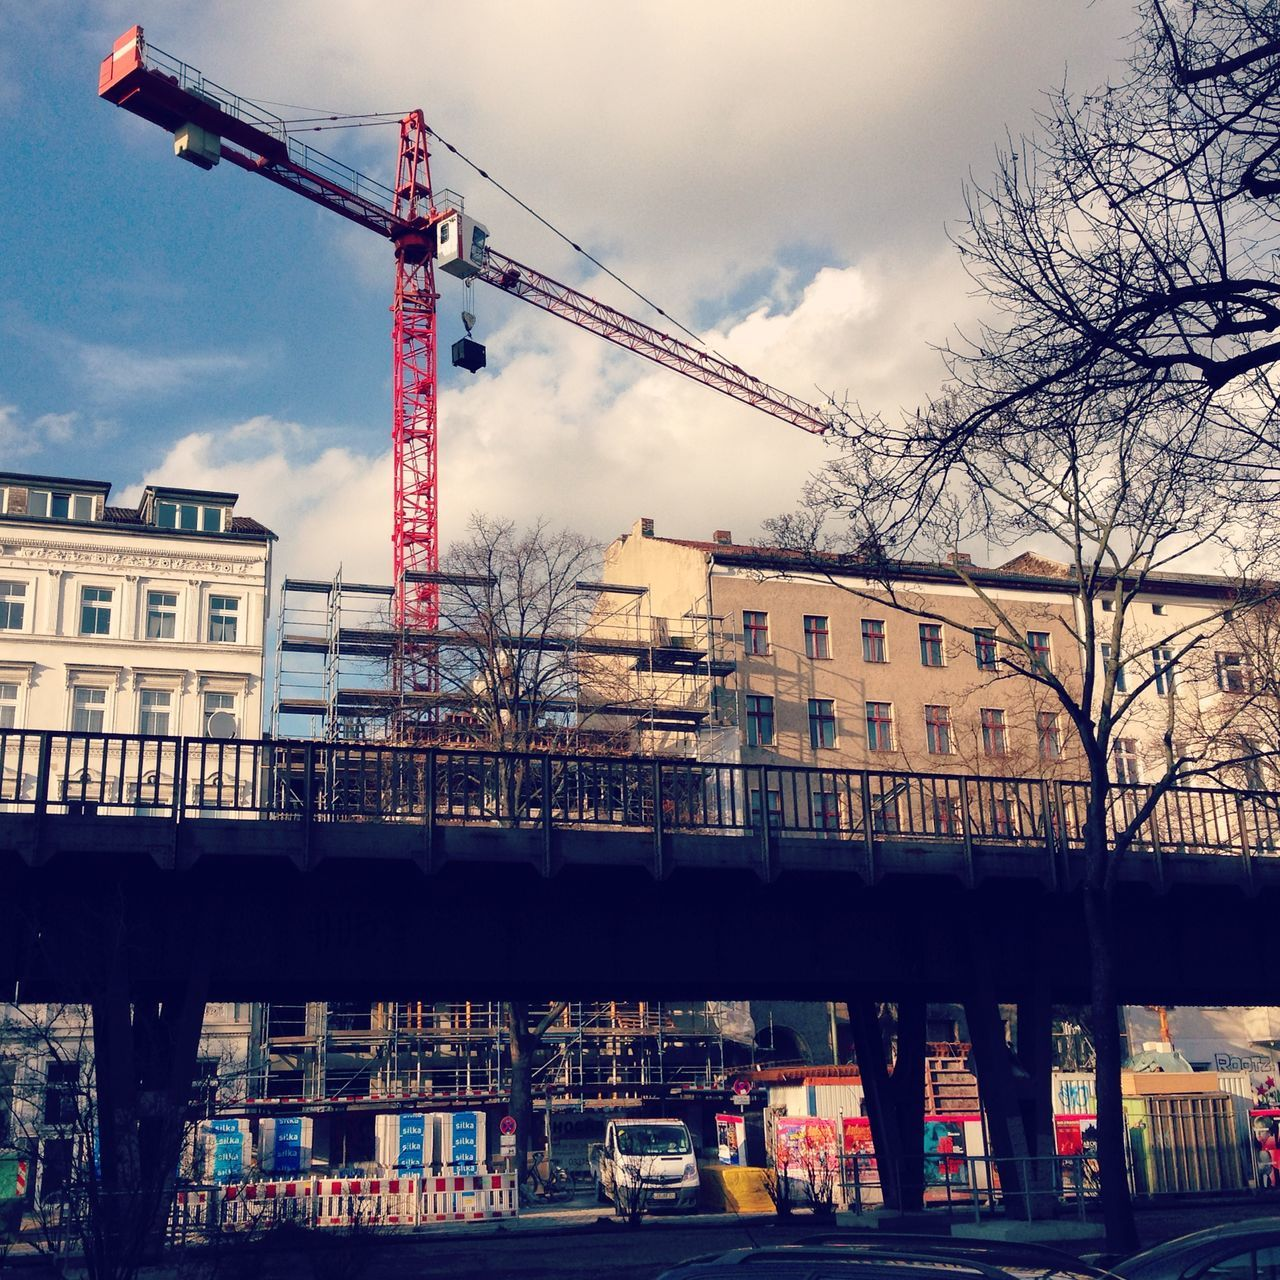 Architecture Baugruppe Building Exterior Built Structure City Cloud - Sky Construction Construction Site Crane Crane - Construction Machinery Cranes Day Development Empty Gap Site Infill Infill Housing Kreuzberg No People Outdoors Red Crane Skalitzer Straße Sky Transportation Water